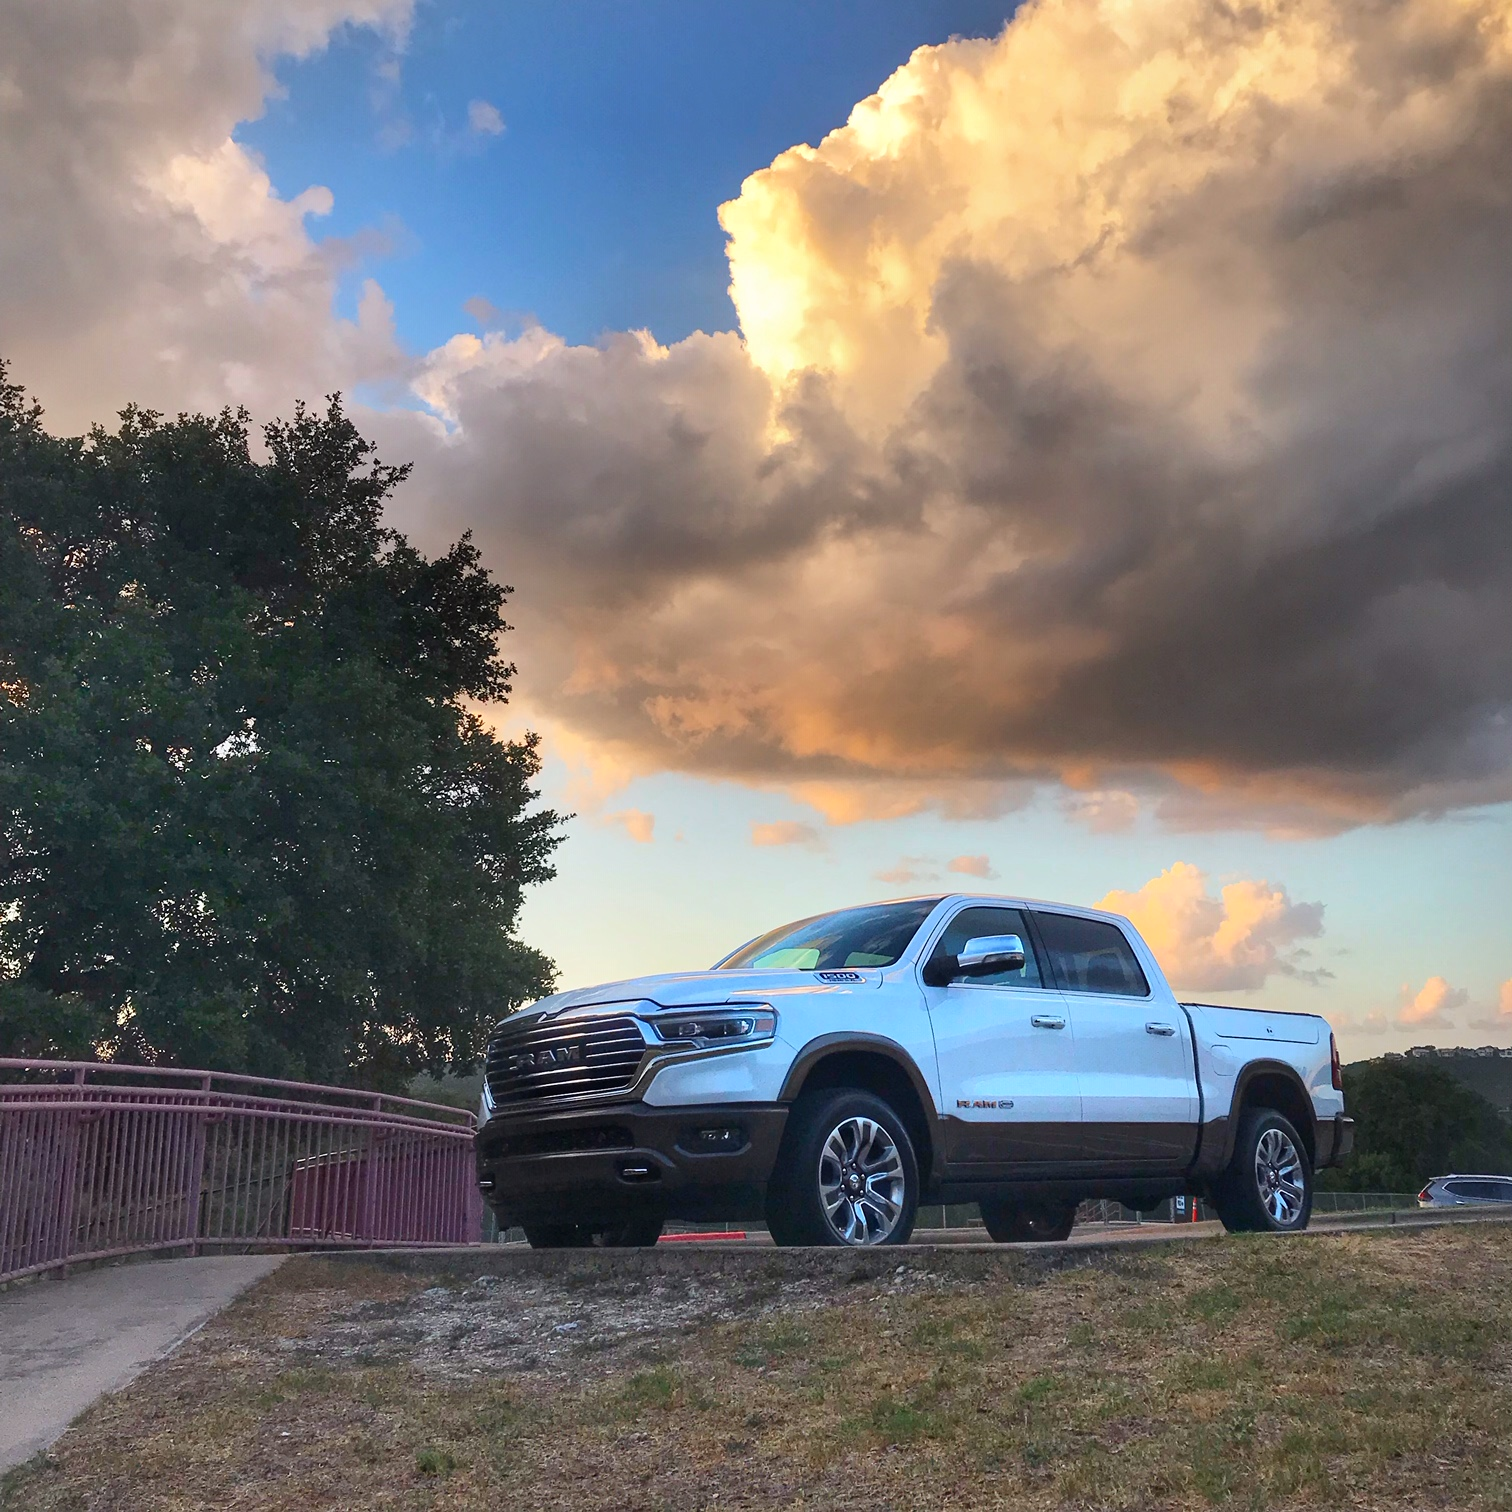 RAM's 1500 is one of the best vehicles for camping.